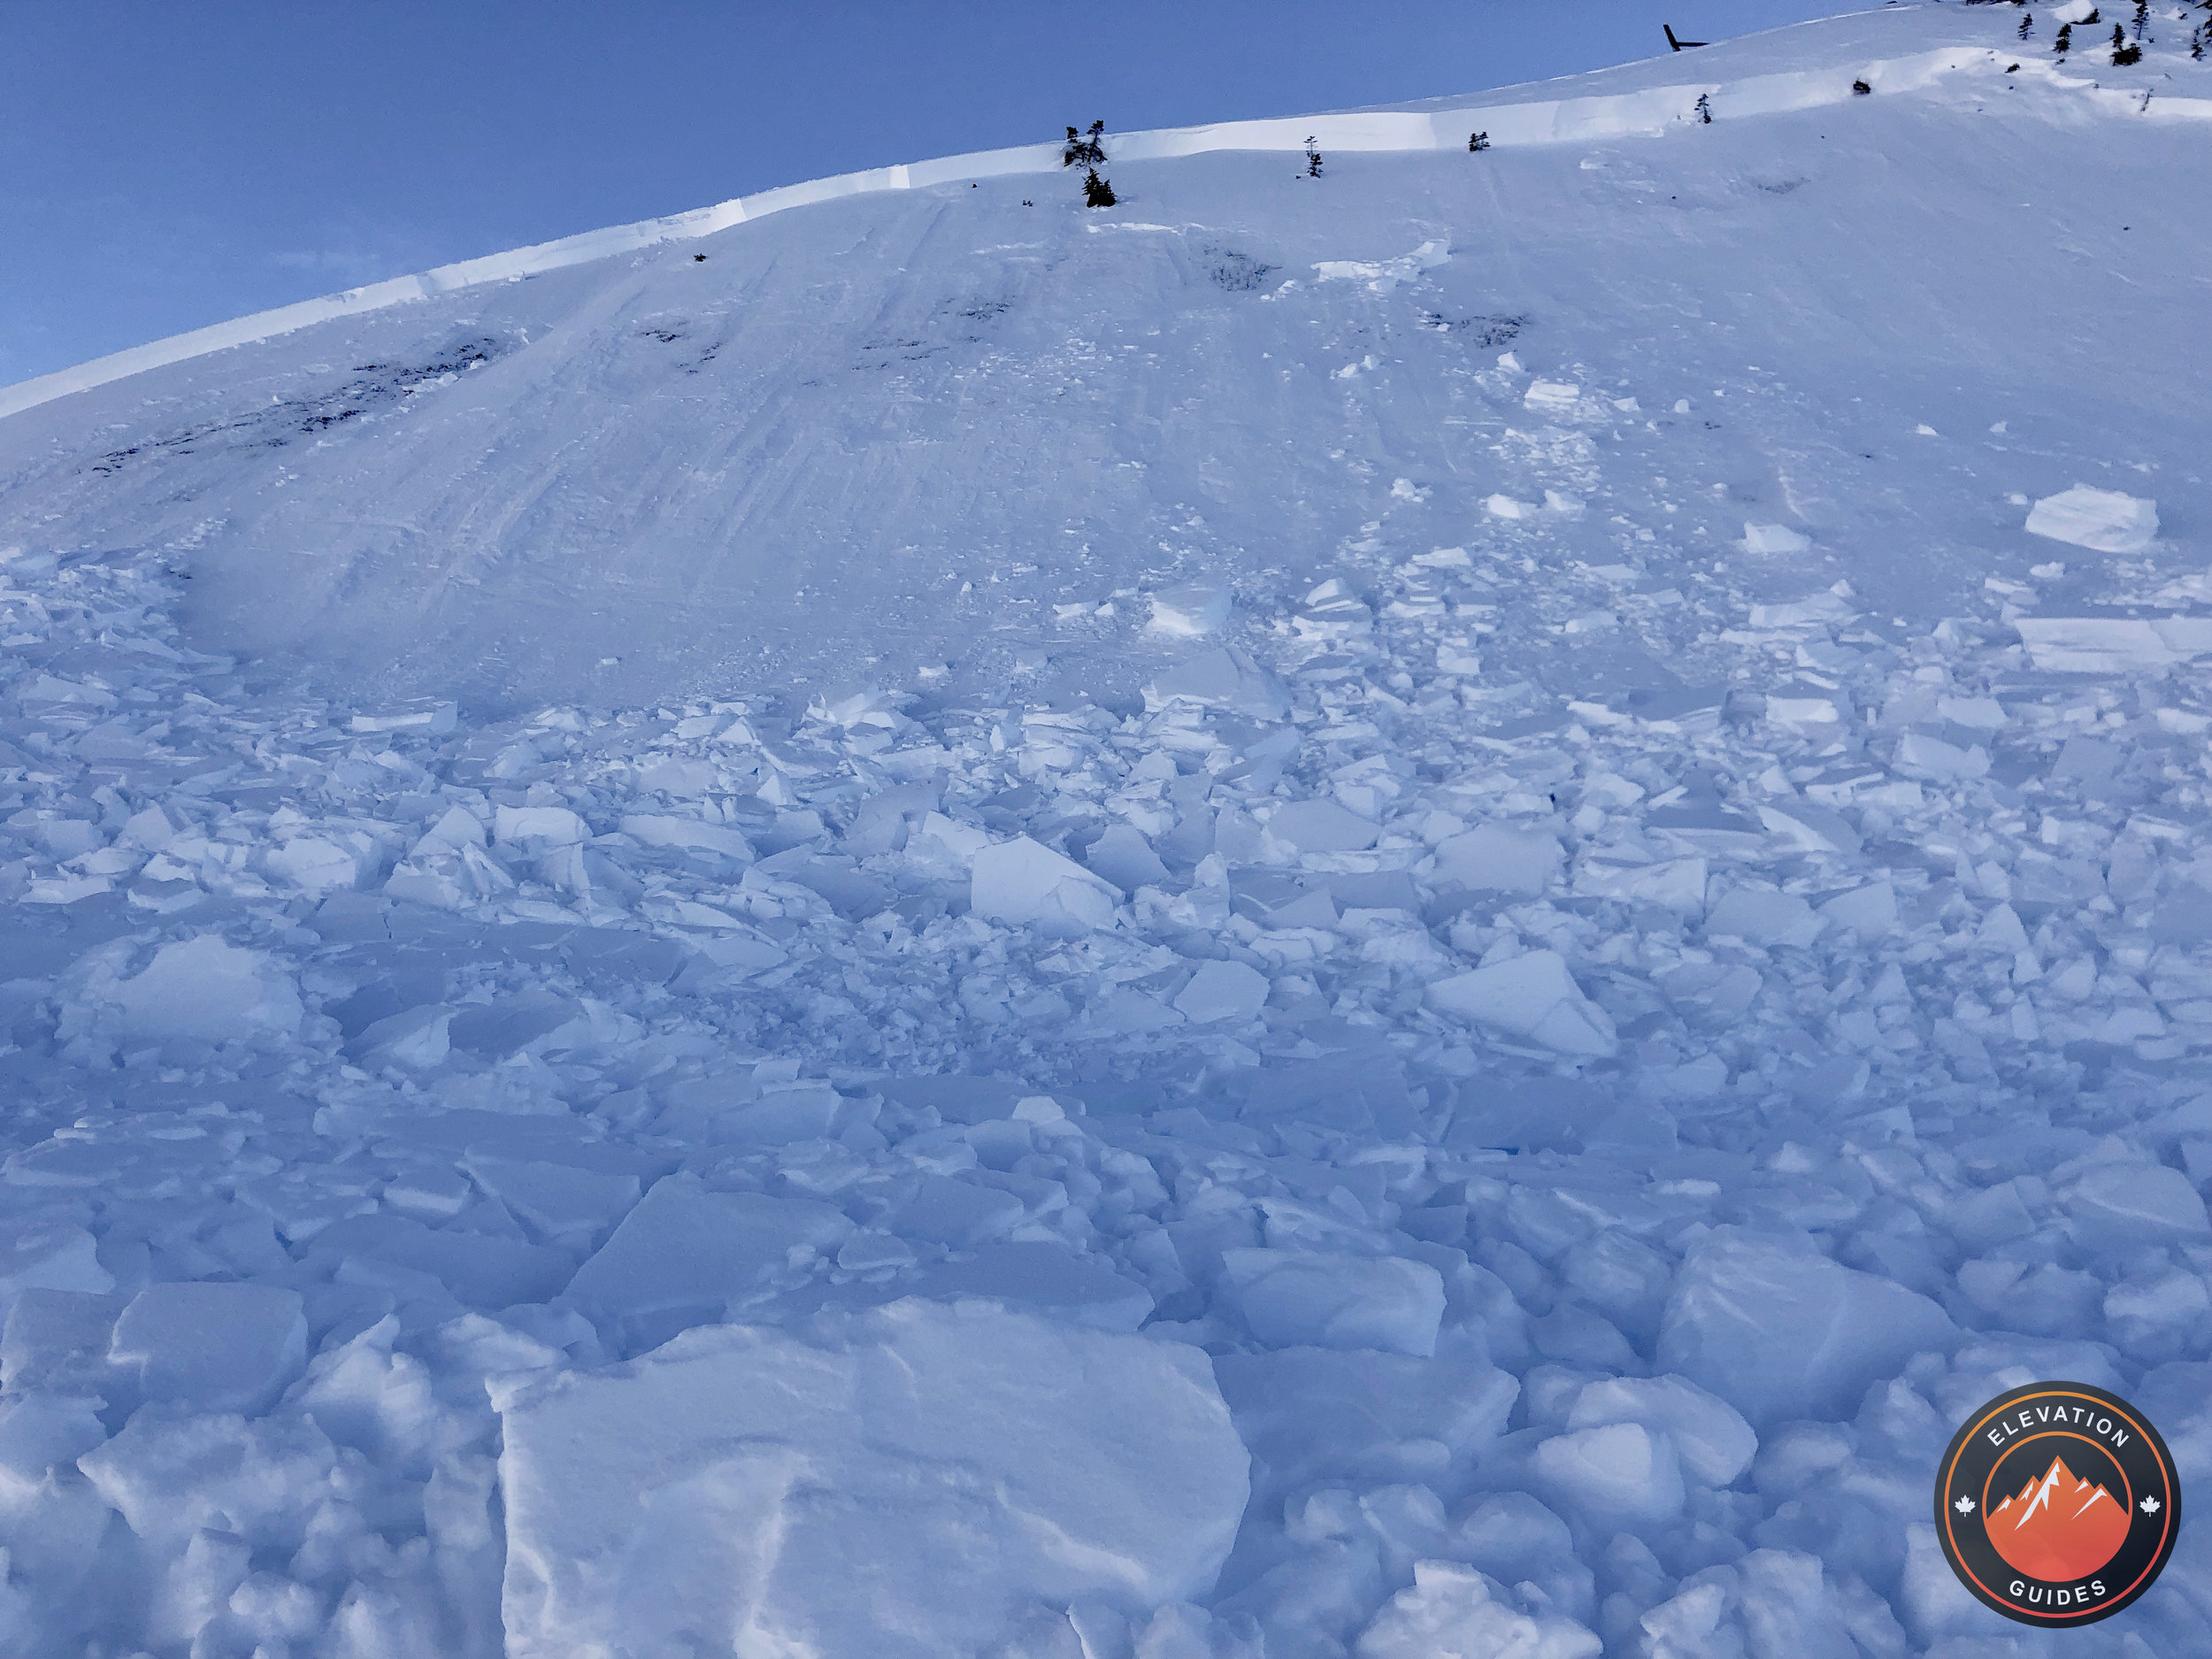 Avalanche Safety Training - AST courses